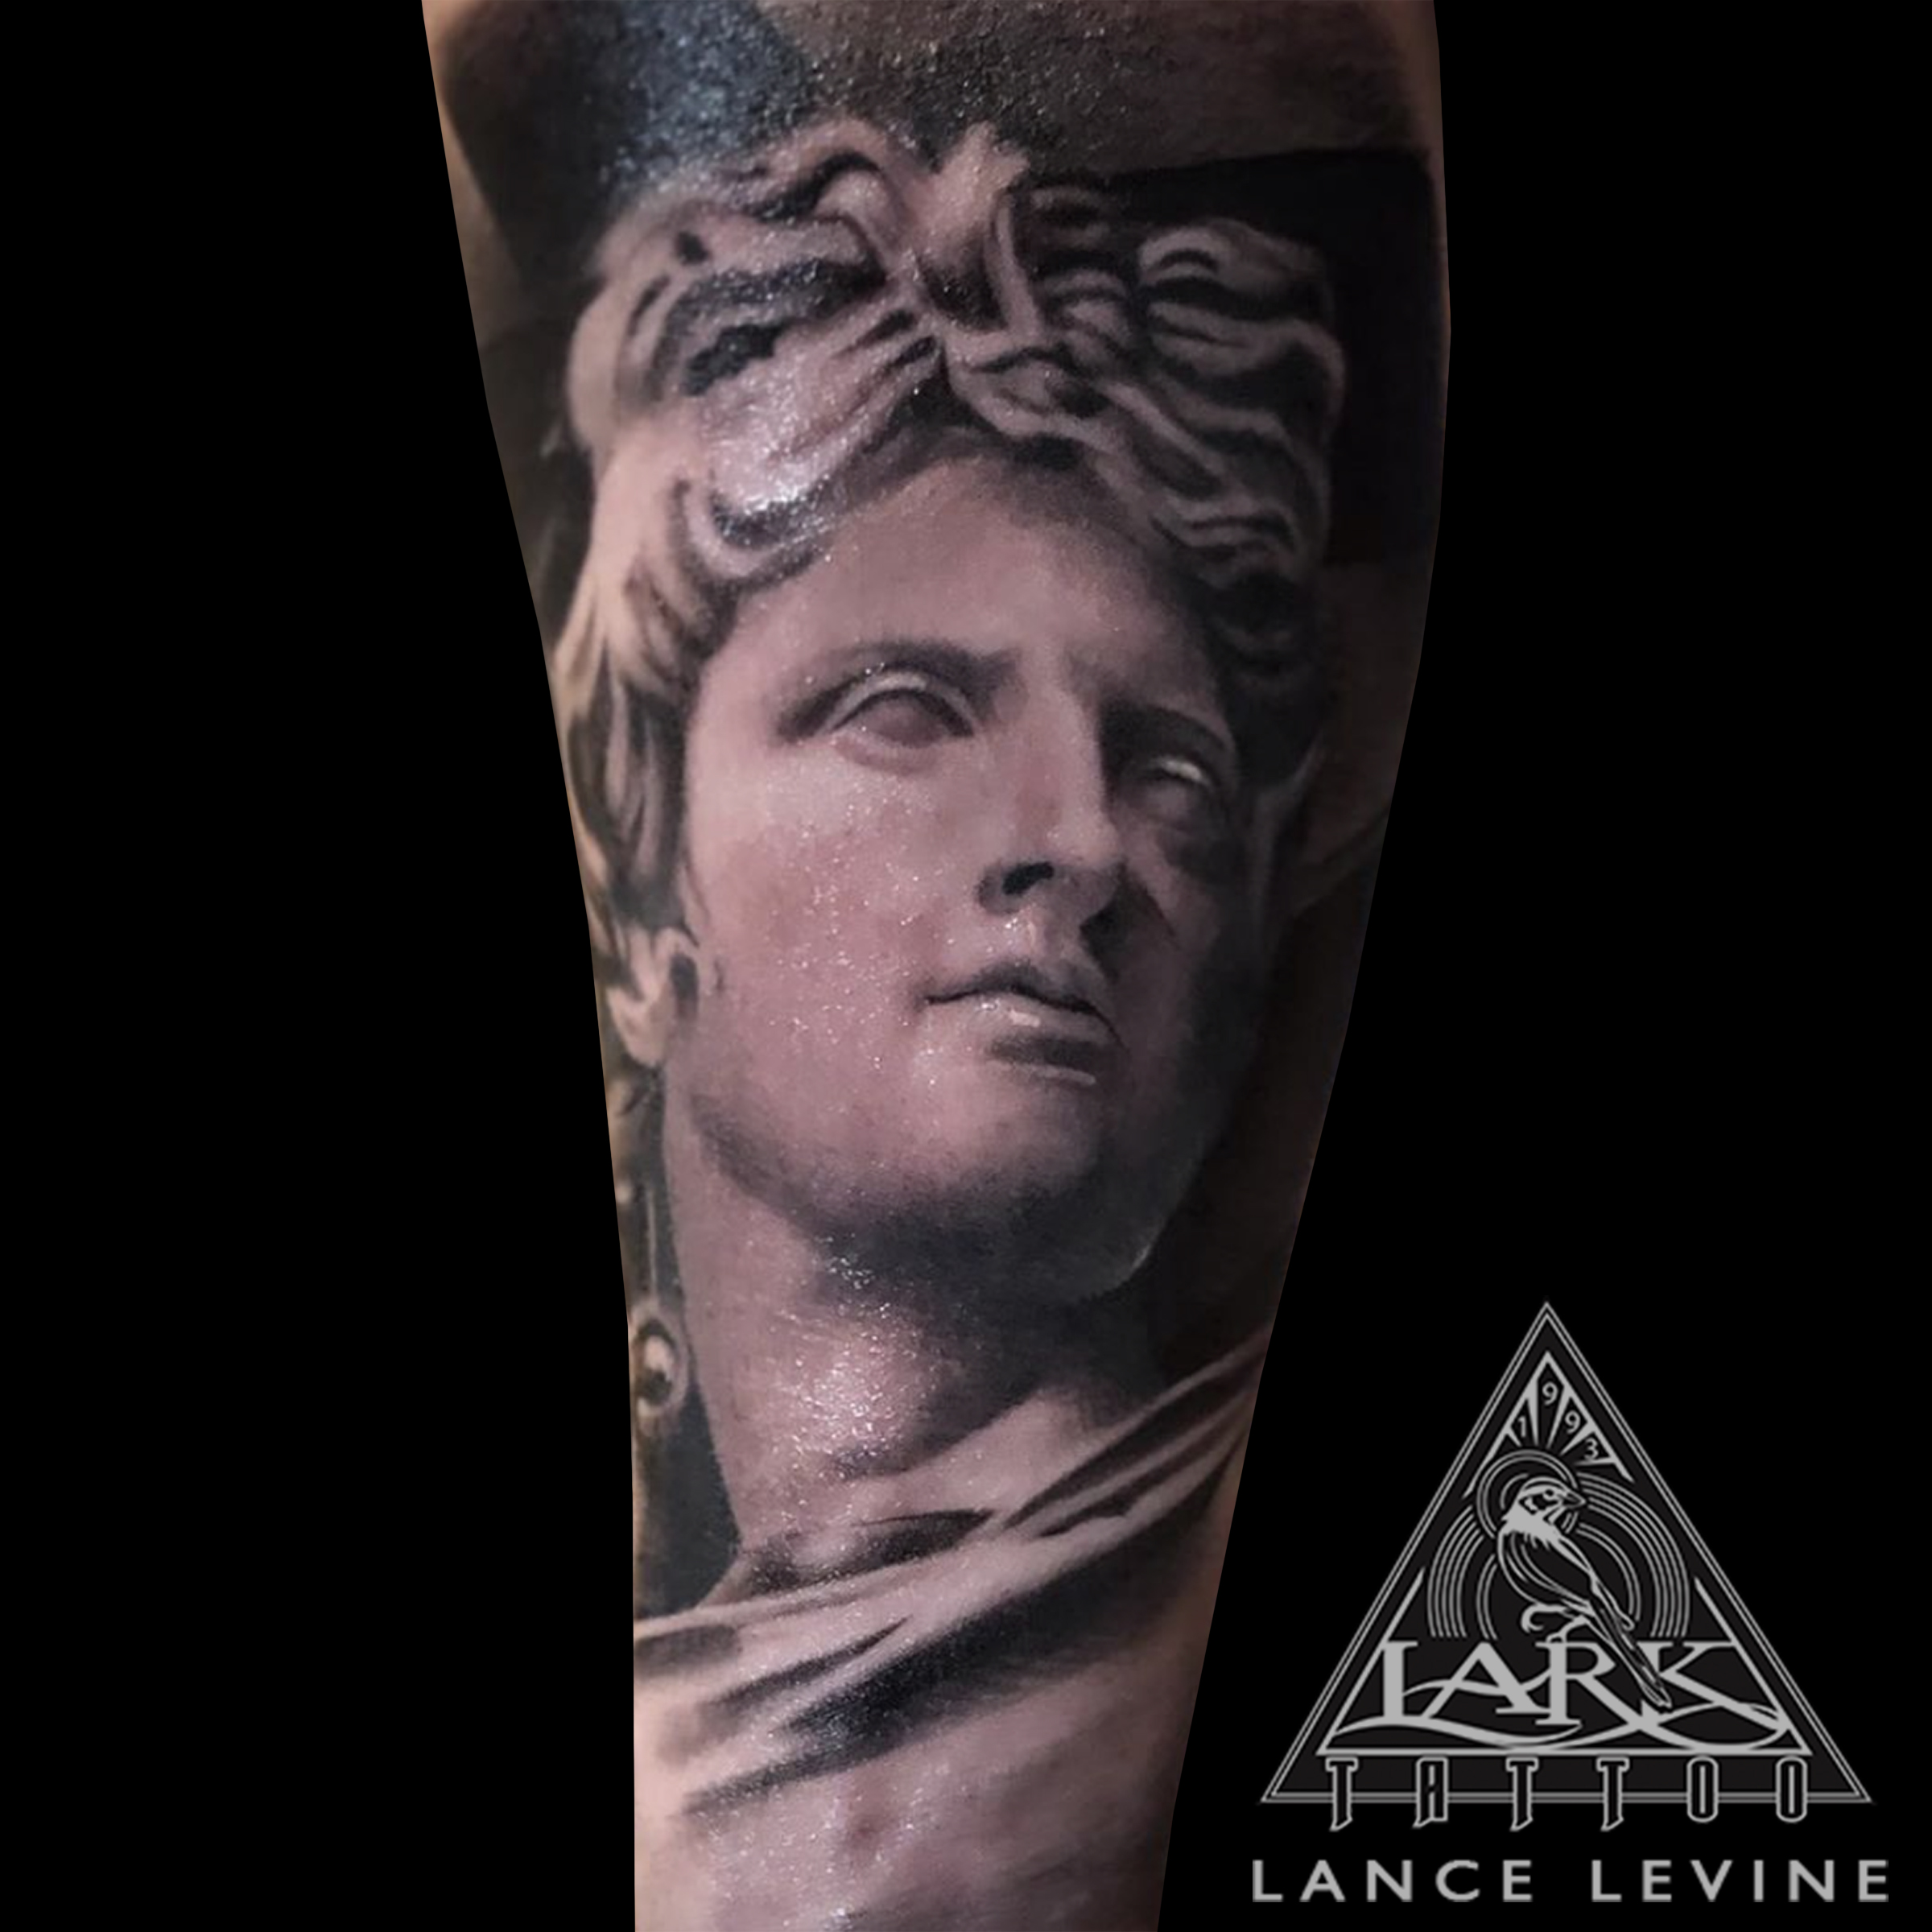 LarkTattoo, Tattoo, Tattoos, LanceLevine, LanceLevineTattoo, Apollo, ApolloTattoo, Greek, GreekTattoo, GreekMythology, GreekMythologyTattoo, Mythology, GreekTattooSleeve, TattooSleeve, RealisticTattoo, SolidInk, Deity, DeityTattoo, Deities, DeitiesTattoo, GreekDeity, GreekDeityTattoo, GreekDeities, GreekDeitiesTattoo, MountOlympus, BNG, BNGTattoo, BNGInkSociety, BlackAndGray, BlackAndGrayTattoo, BlackAndGrey, BlackAndGreyTattoo, TattooArtist, Tattoist, Tattooer, LongIslandTattooArtist, LongIslandTattooer, LongIslandTattoo, TattooOfTheDay, Tat, Tats, Tatts, Tatted, Inked, Ink, TattooInk, AmazingInk, AmazingTattoo, BodyArt, LarkTattooWestbury, Westbury, LongIsland, NY, NewYork, USA, Art, Tattedup, InkedUp, LarkTattoos